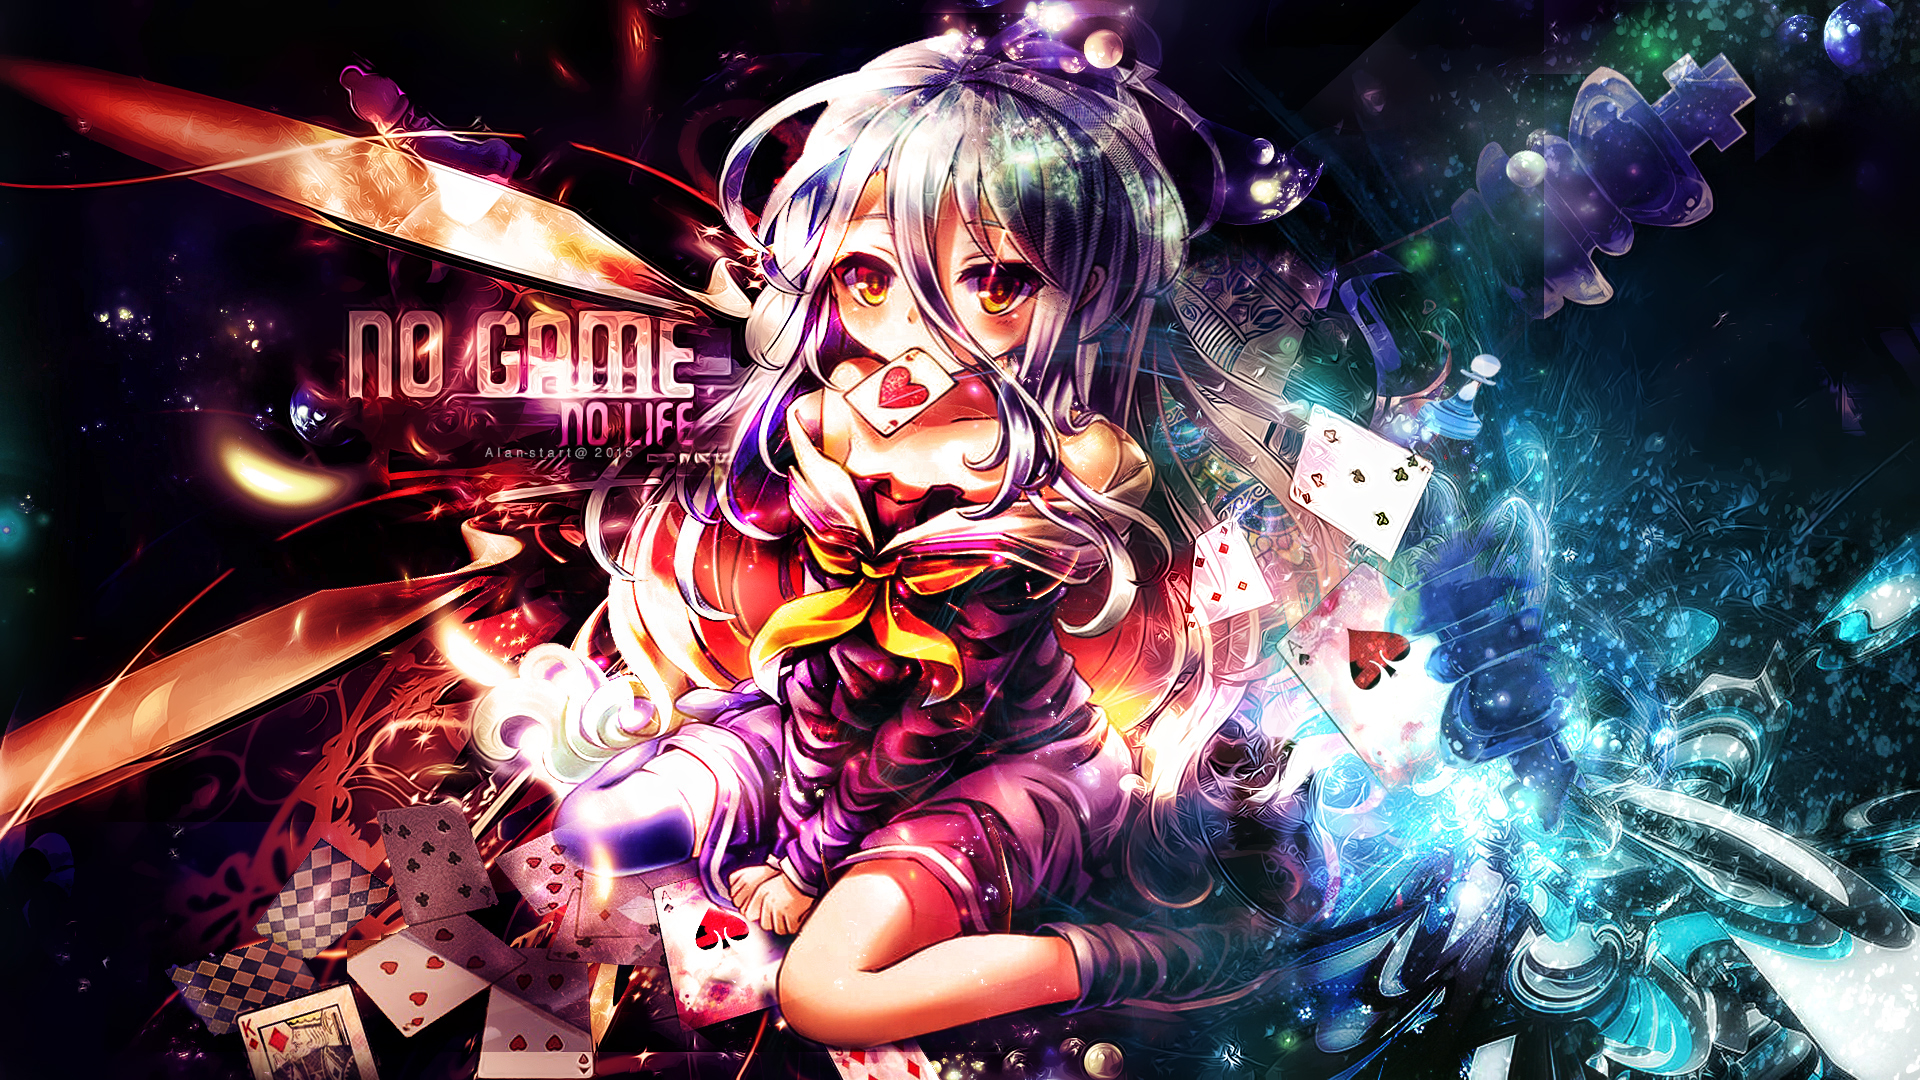 Shiro No Game No Life Hd Wallpaper 1852318 Zerochan Anime